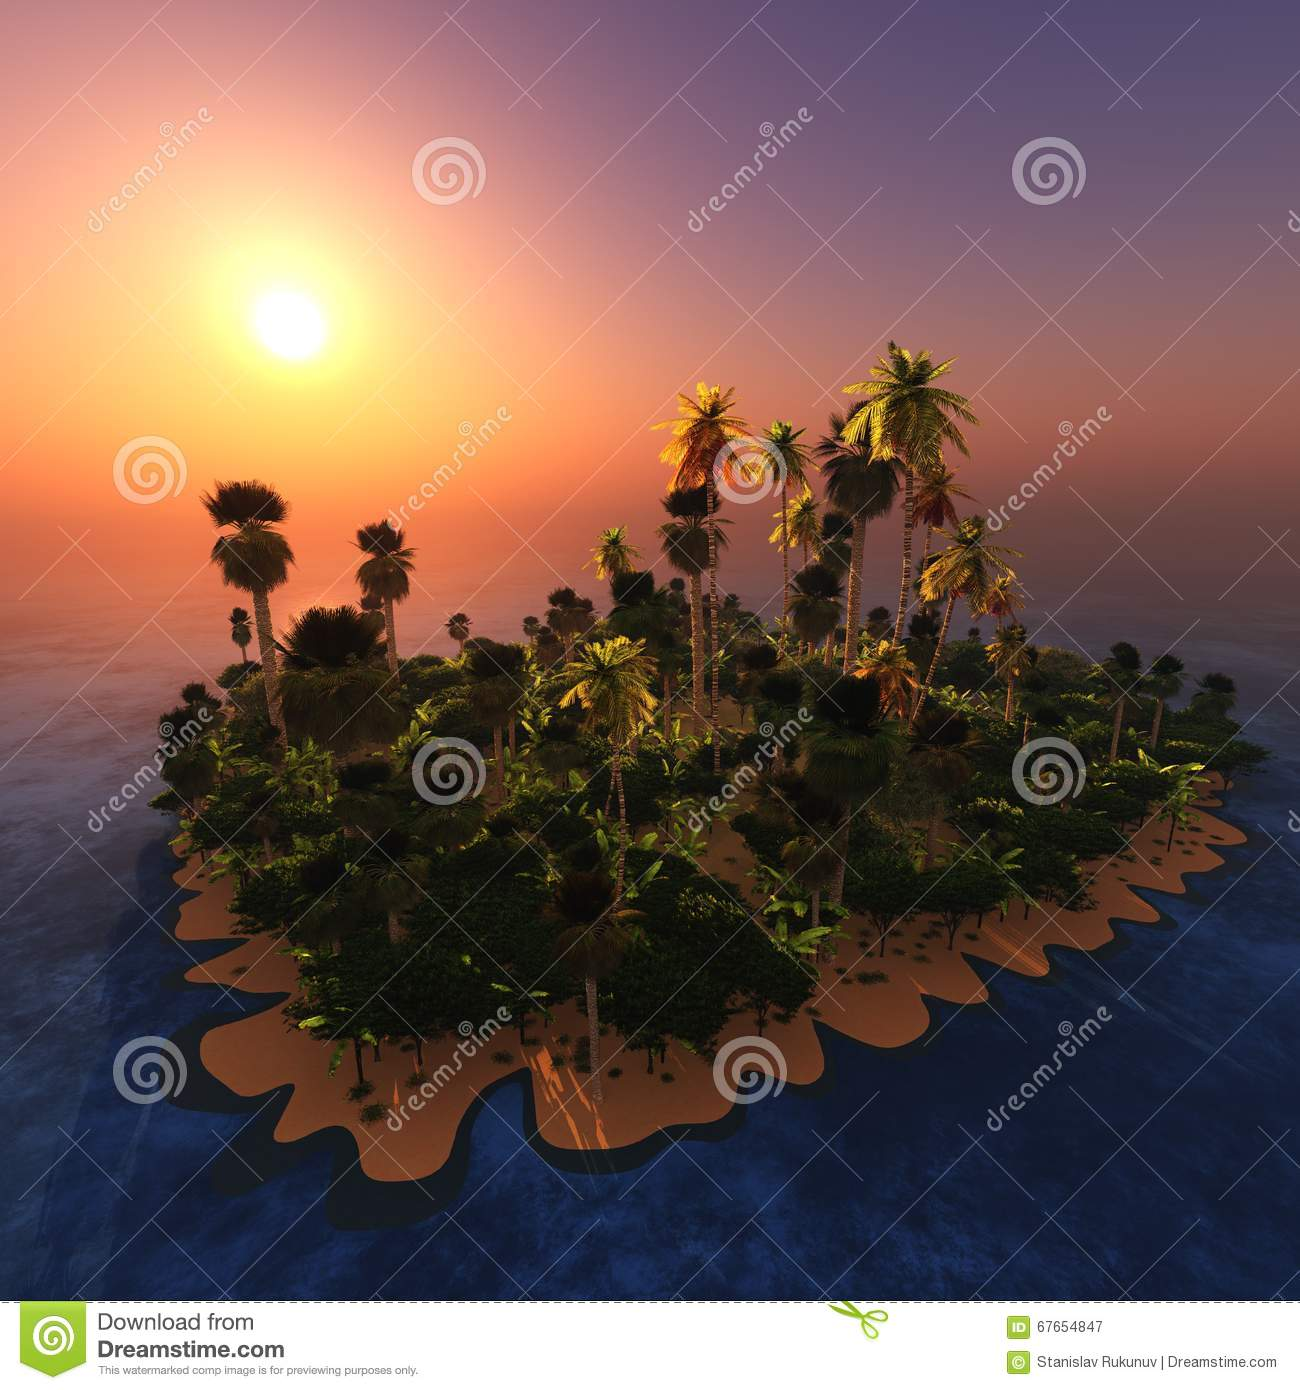 Island Beach Sunset: Tropical Beach And Palm Trees, The Sunset Over The Island